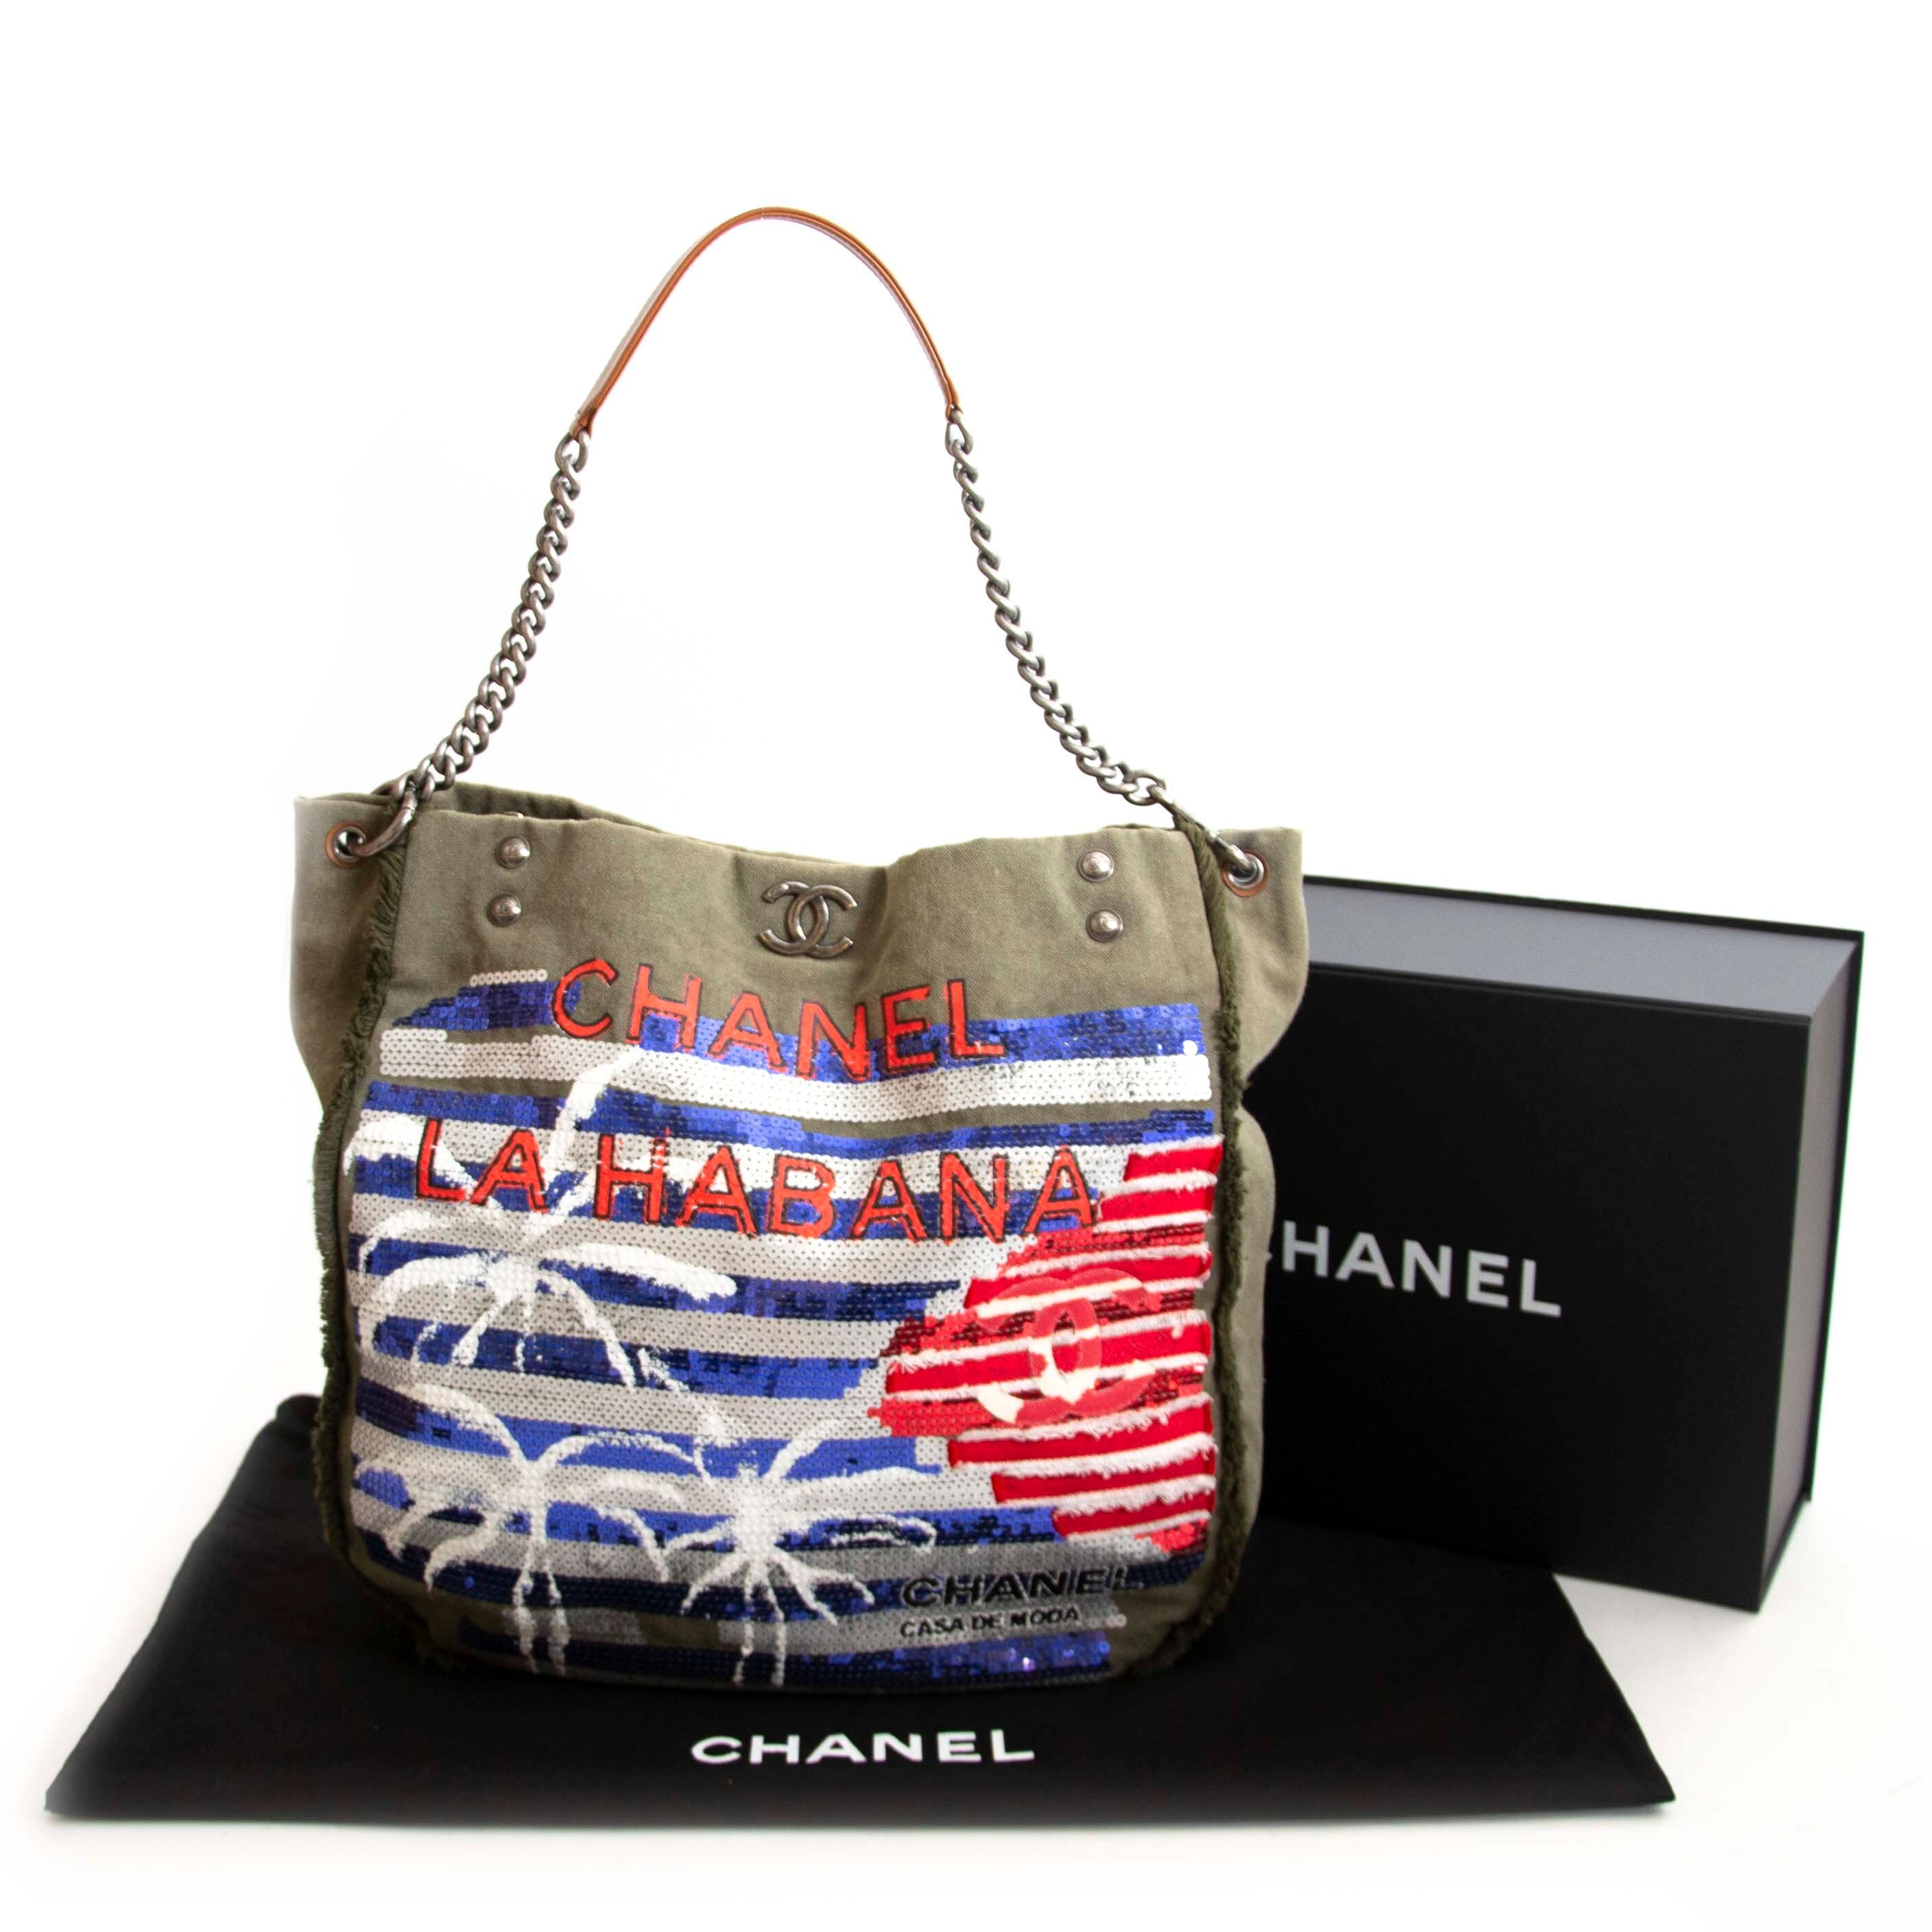 Chanel La HABANA Green Multicolor Hobo Bag